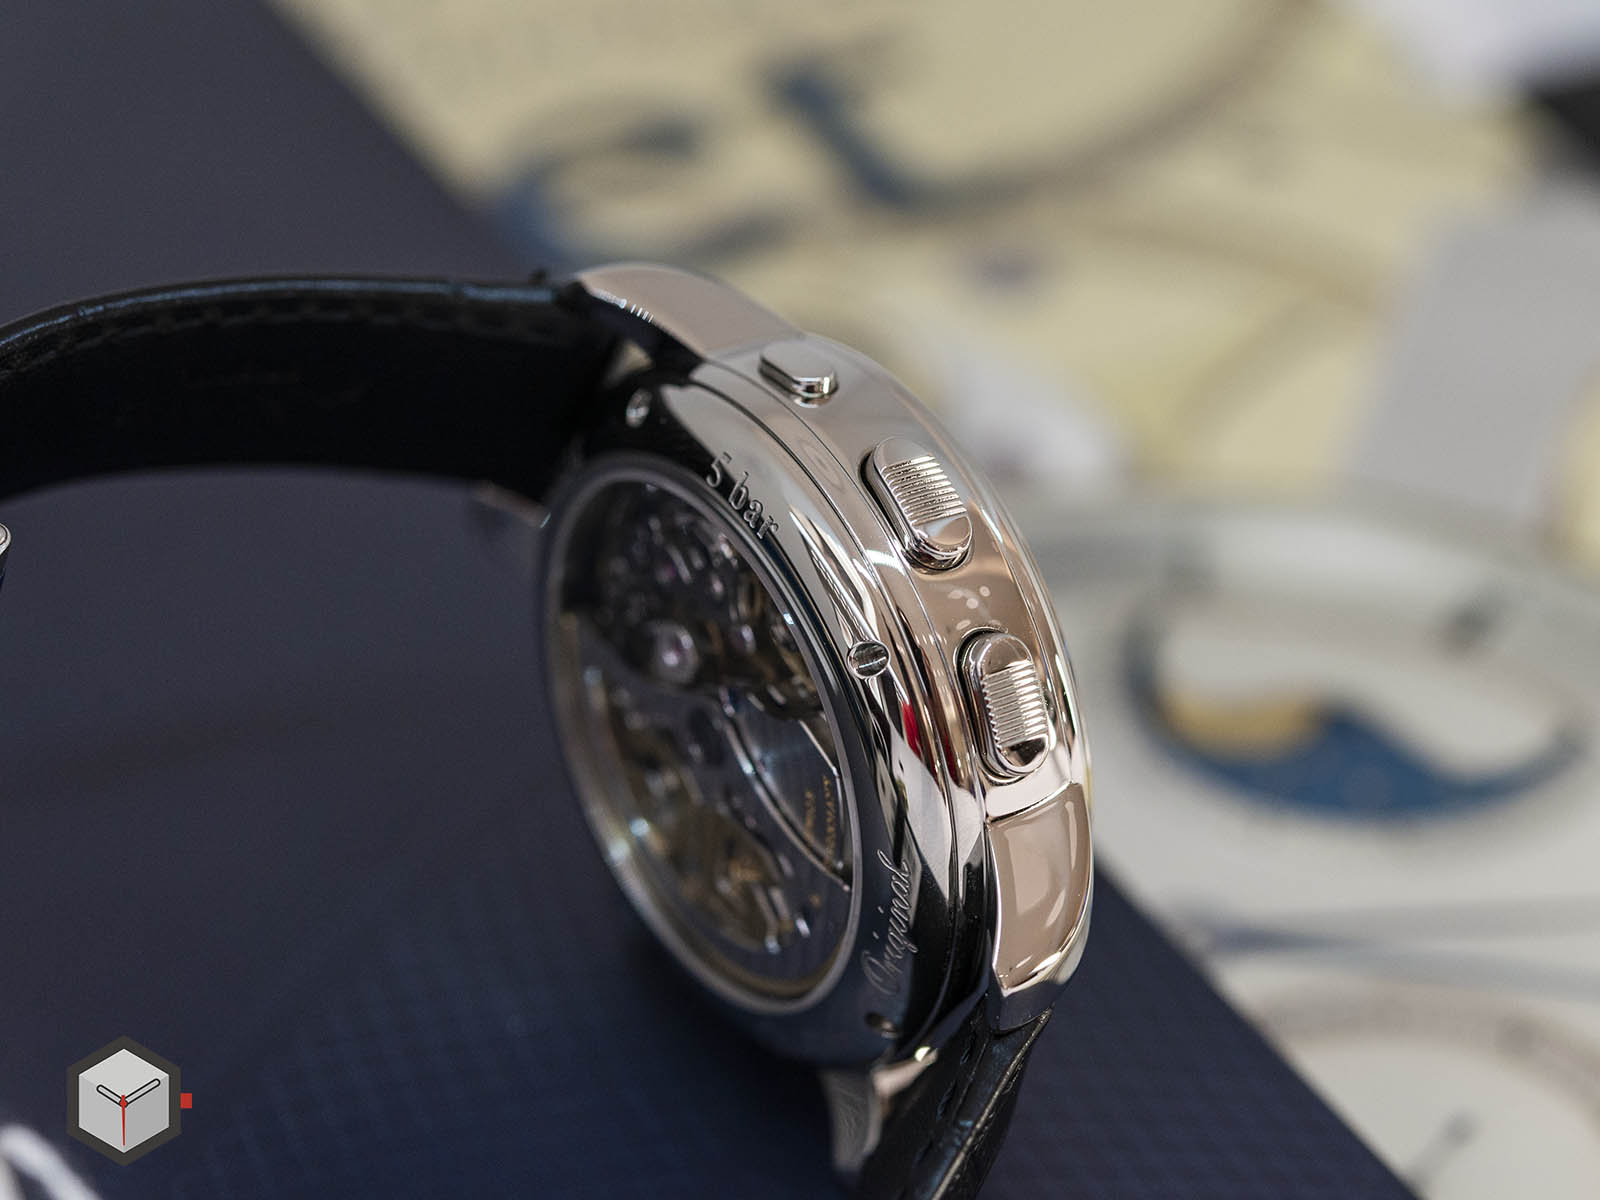 glashutte-original-panomatic-counter-xl-6.jpg